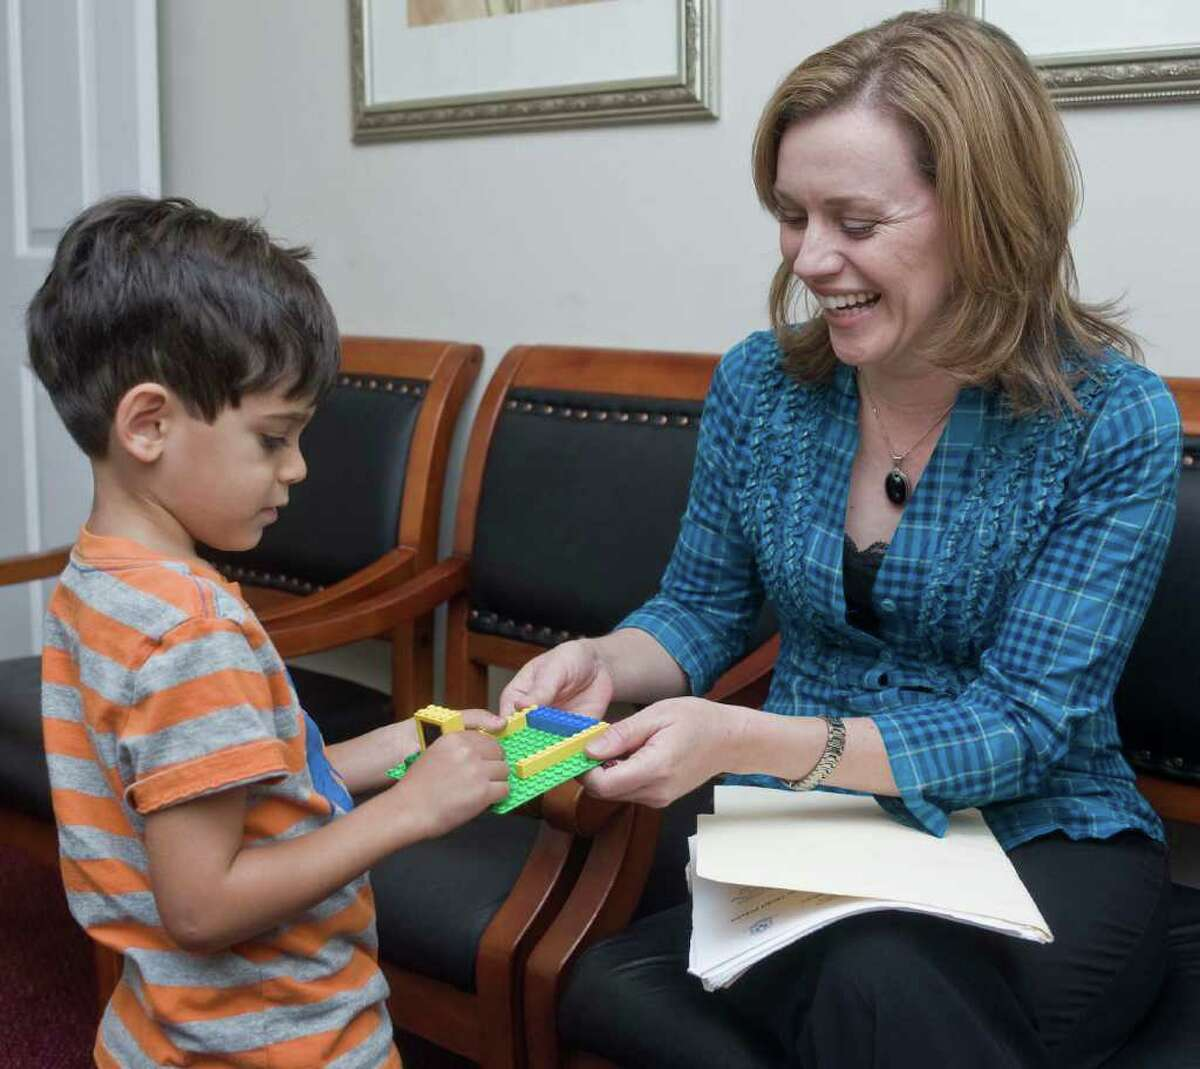 Eamonn Abdulrahman, 5, works with his mom Lauren Wolfe on a Legos activity in Ridgefield. Lauen is a nationally certified counselor who talks about the pressure society places on adolescent girls regarding their appearance. She encourages parents to give positive messages to their daughters to help counteract this pressure. Friday, Sept. 3, 2010